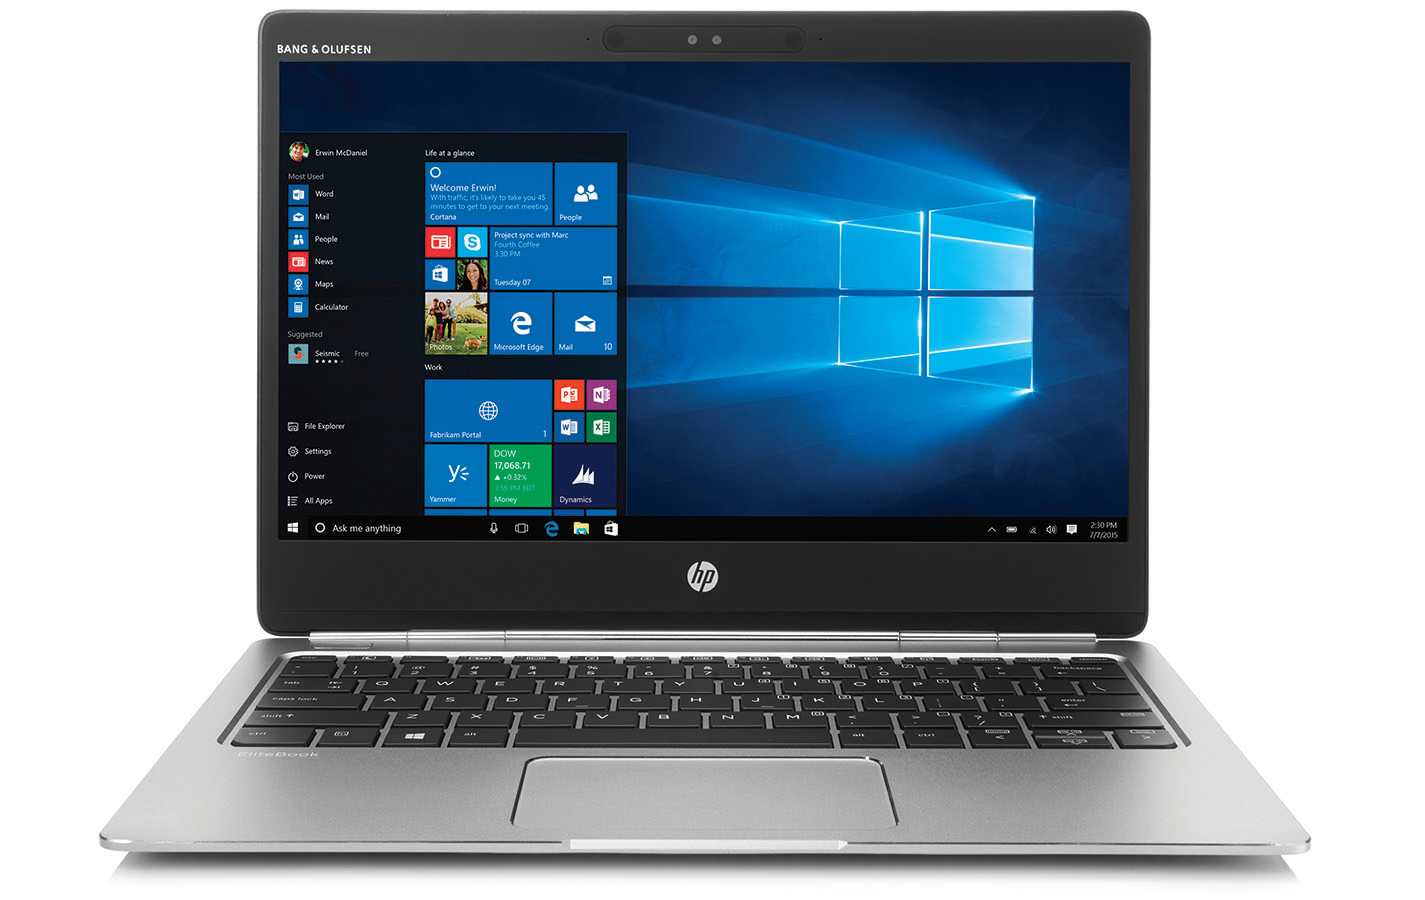 "HP Folio G1 m5-6Y54 12.5"" FHD UWVA, 8GB, 256GB, ac, BT, backlit keyb, 3y warr, Premium Packaging, Win 10 Pro"